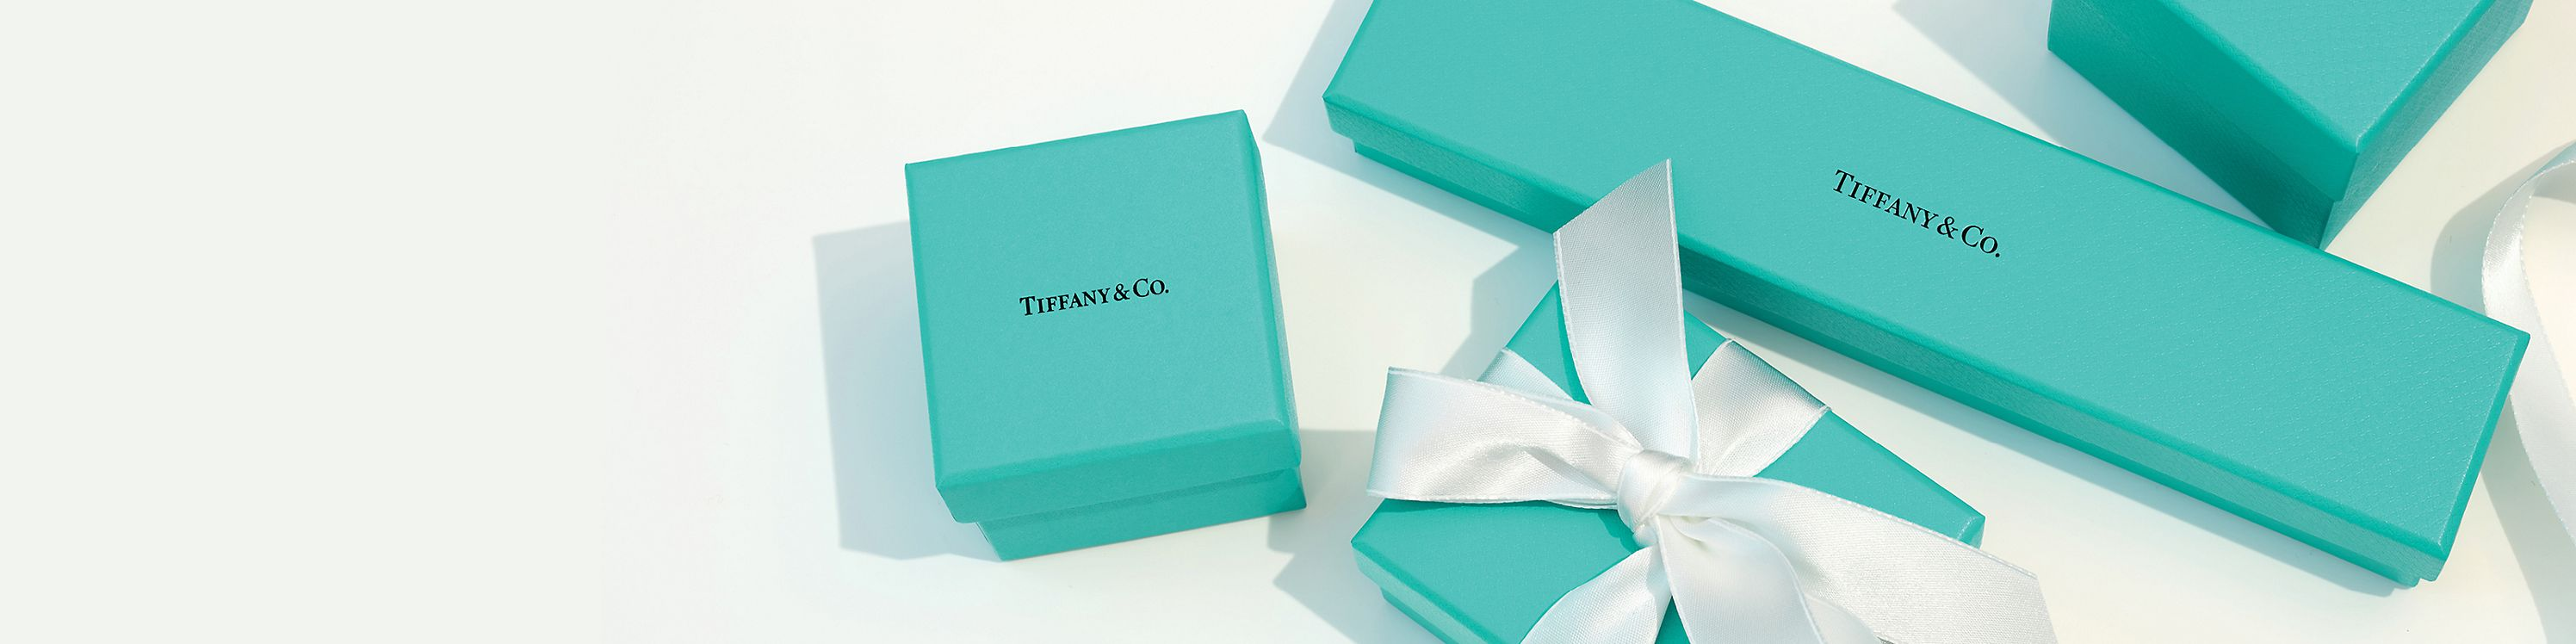 Tiffany at Your Service